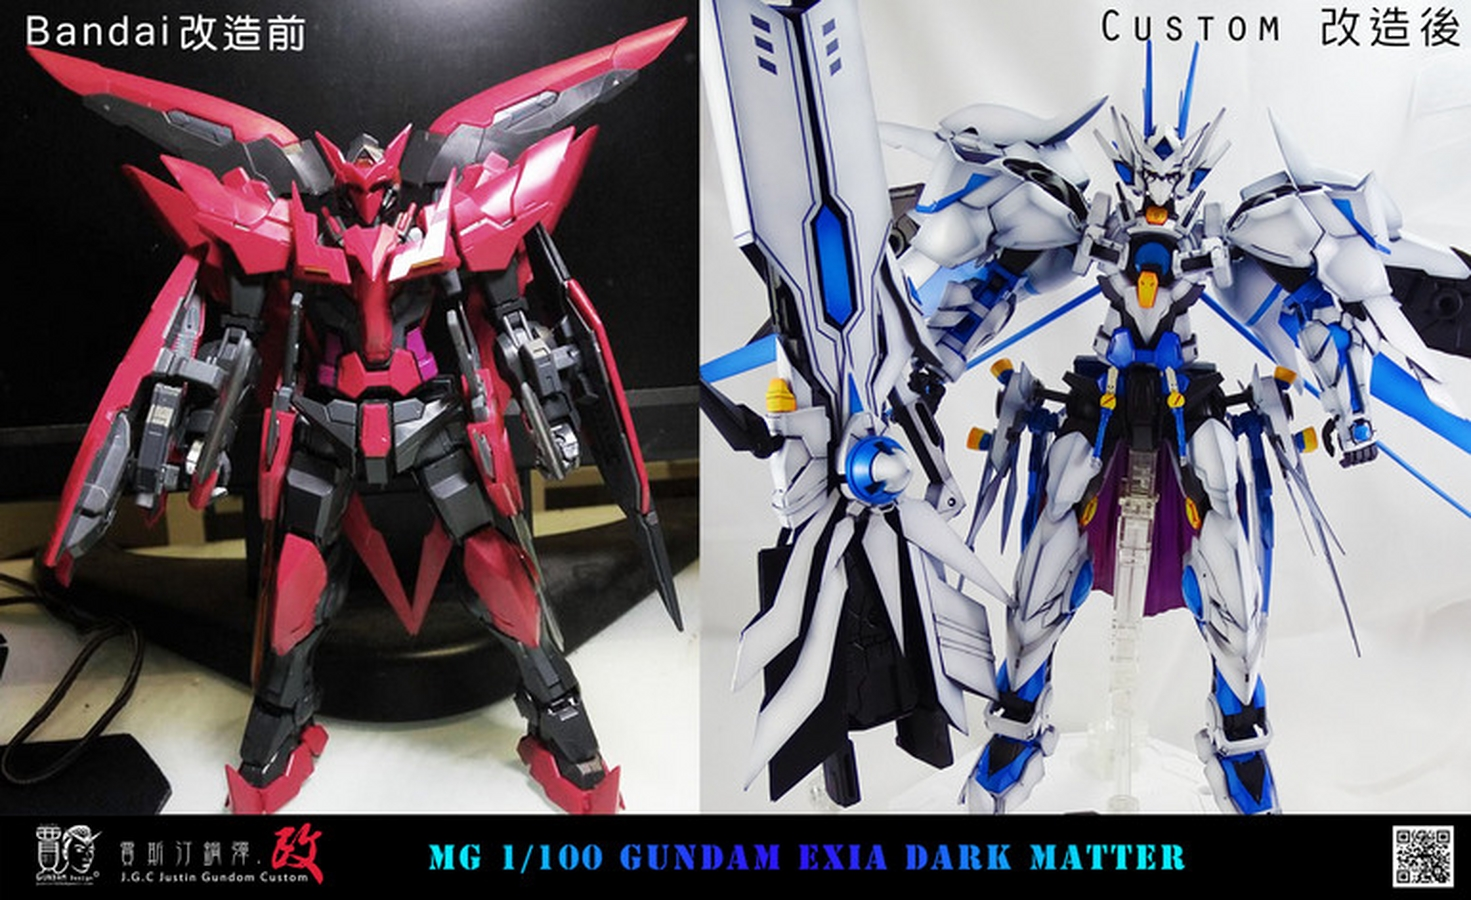 gundam exia dark matter custom - photo #22